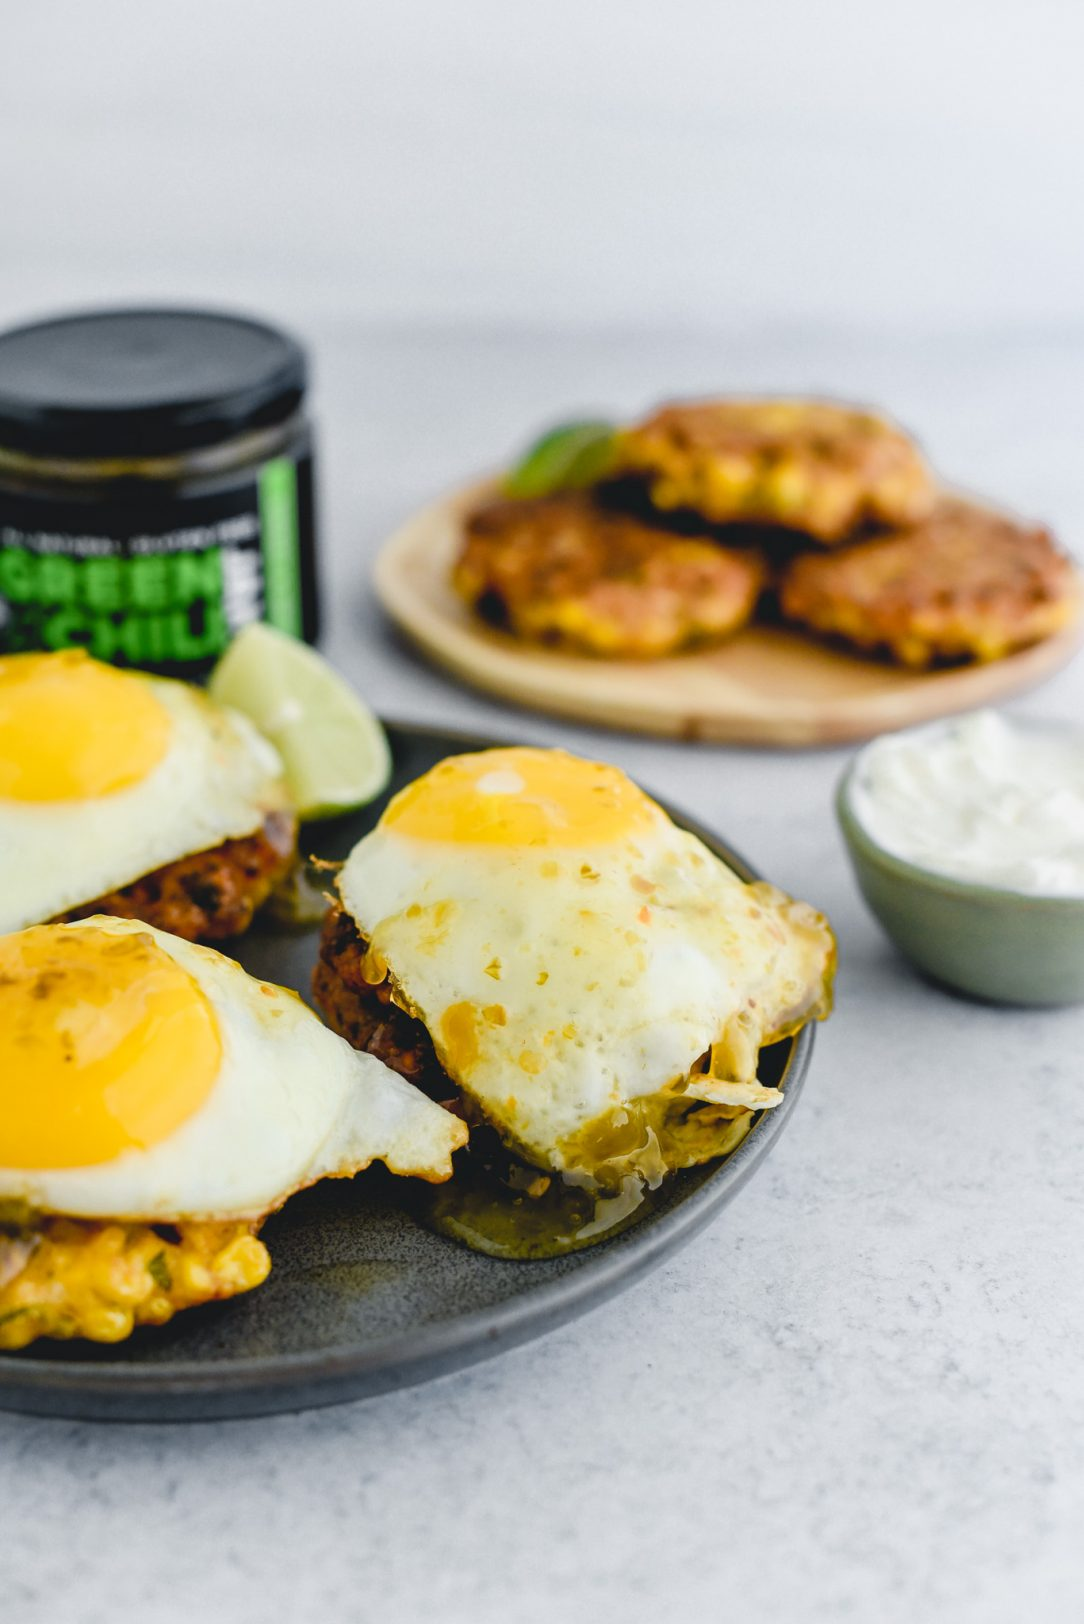 corn fritter with egg on top